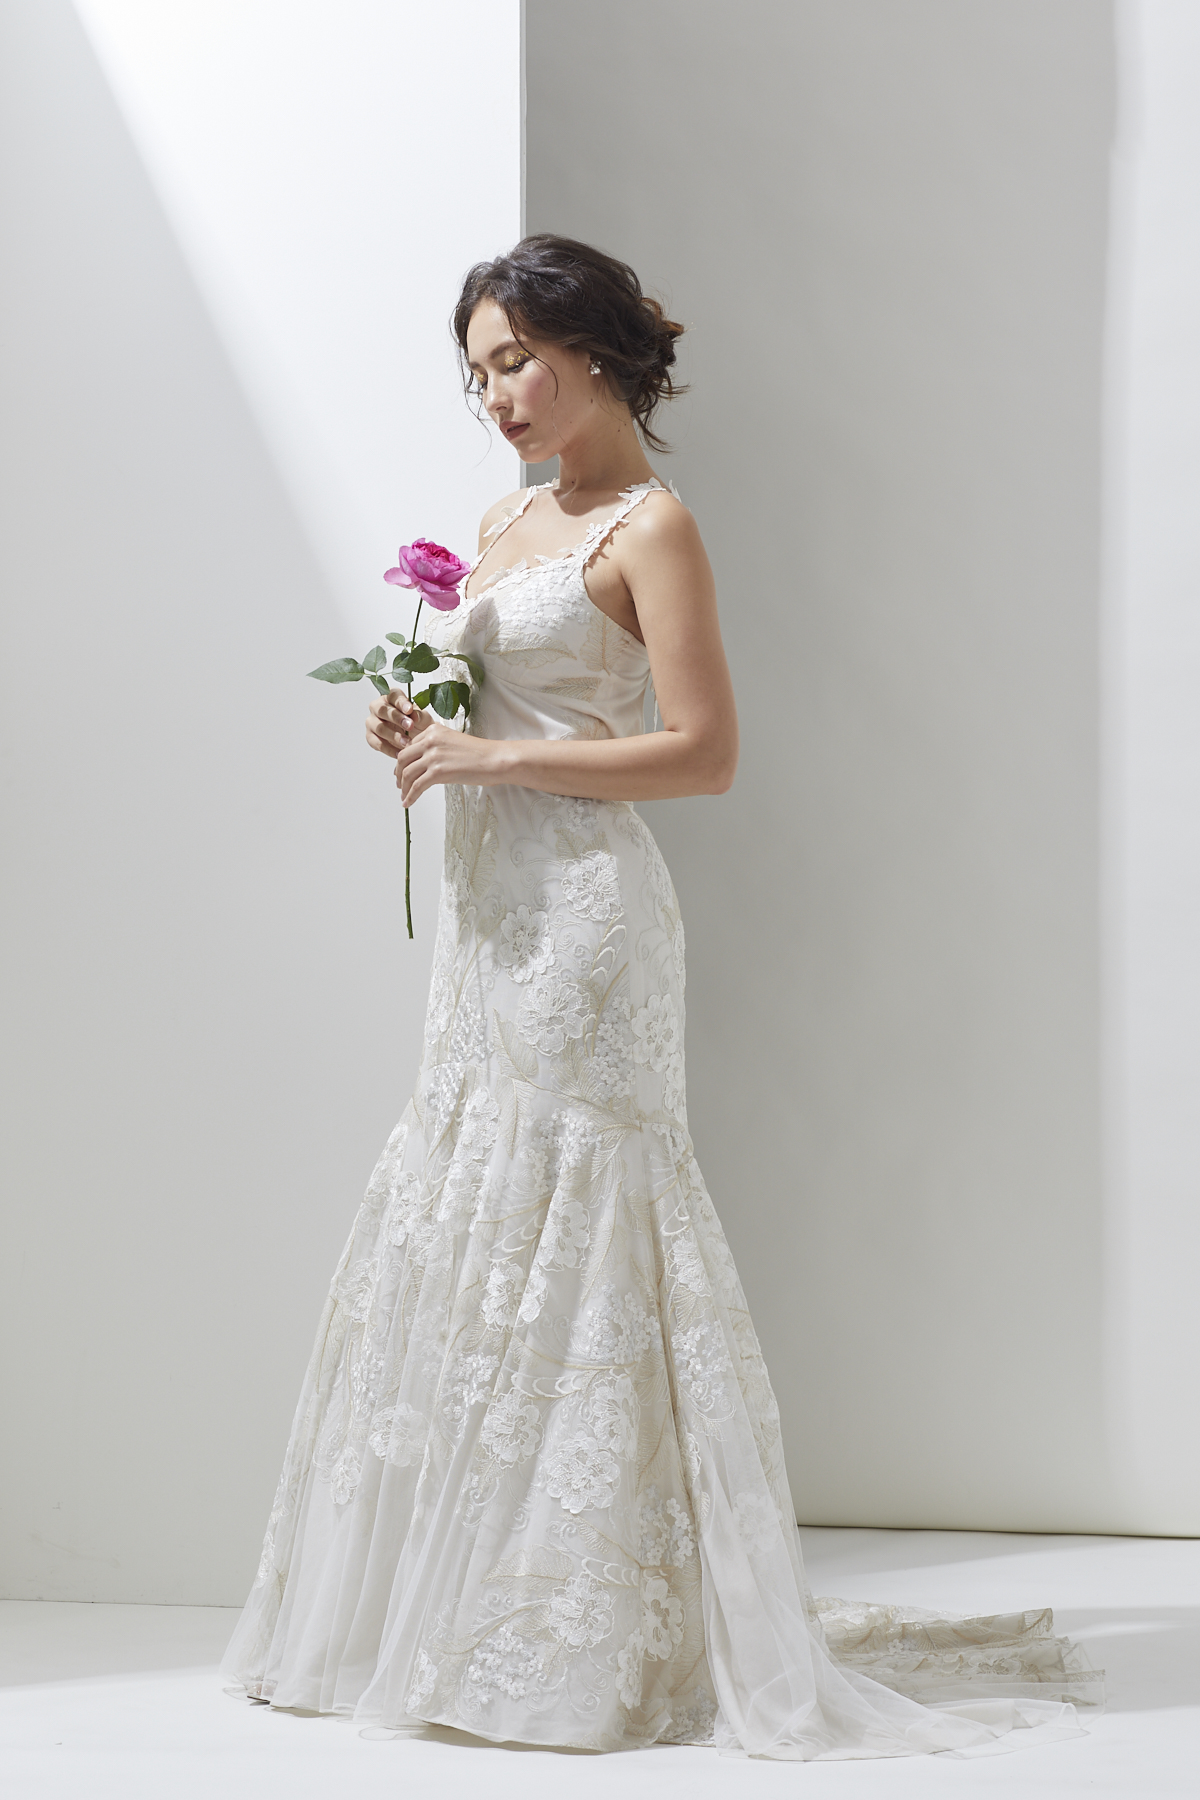 [RENTAL]Claire Pettibone[Devotion]